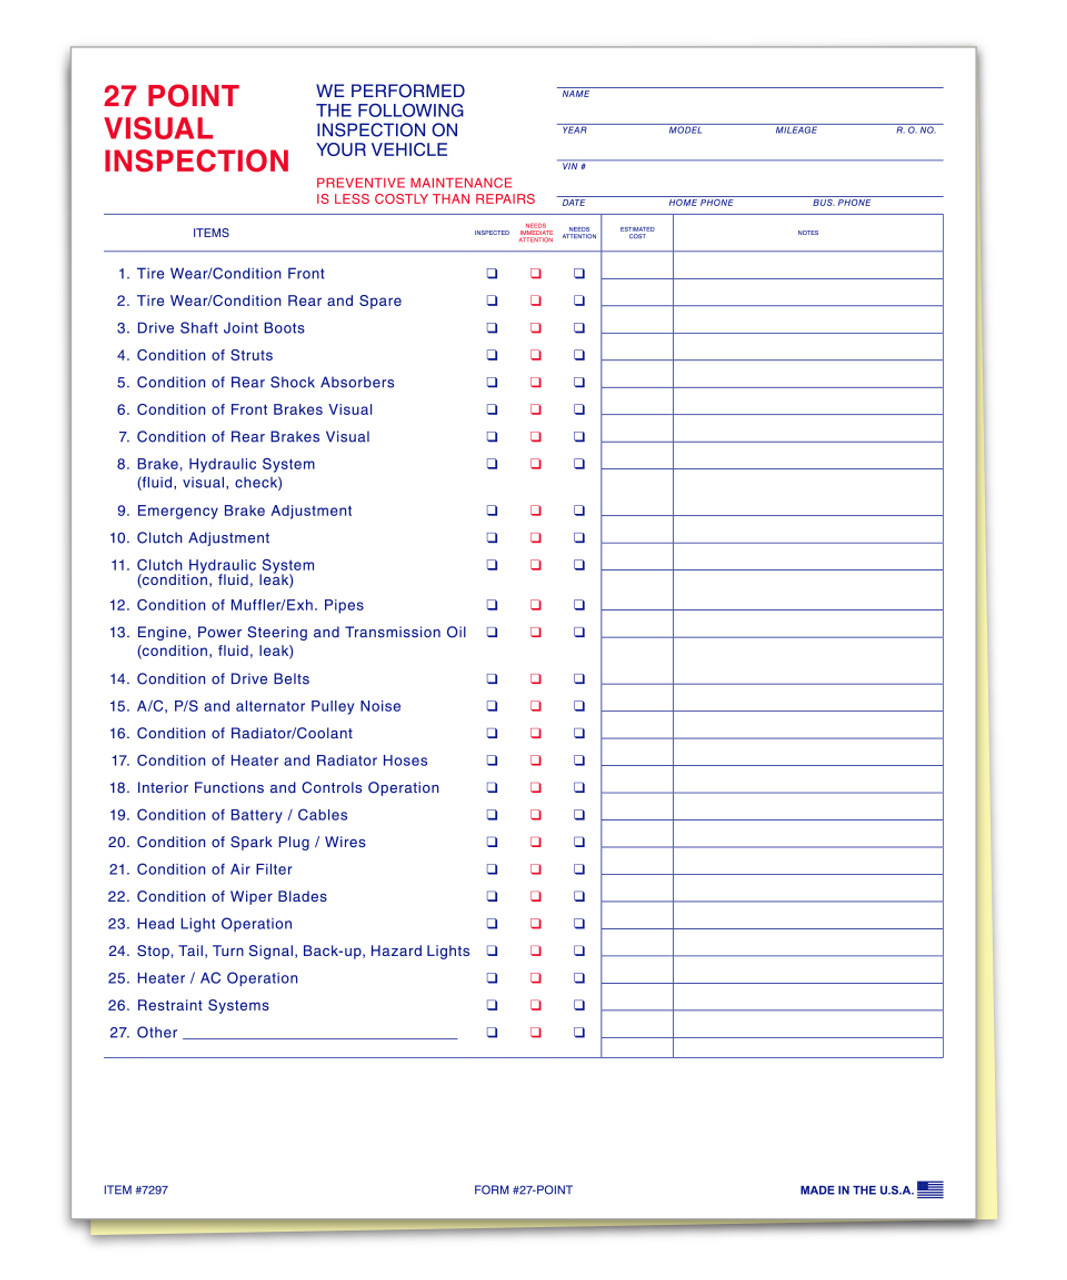 27 Point Inspection (Form-#27-Point)